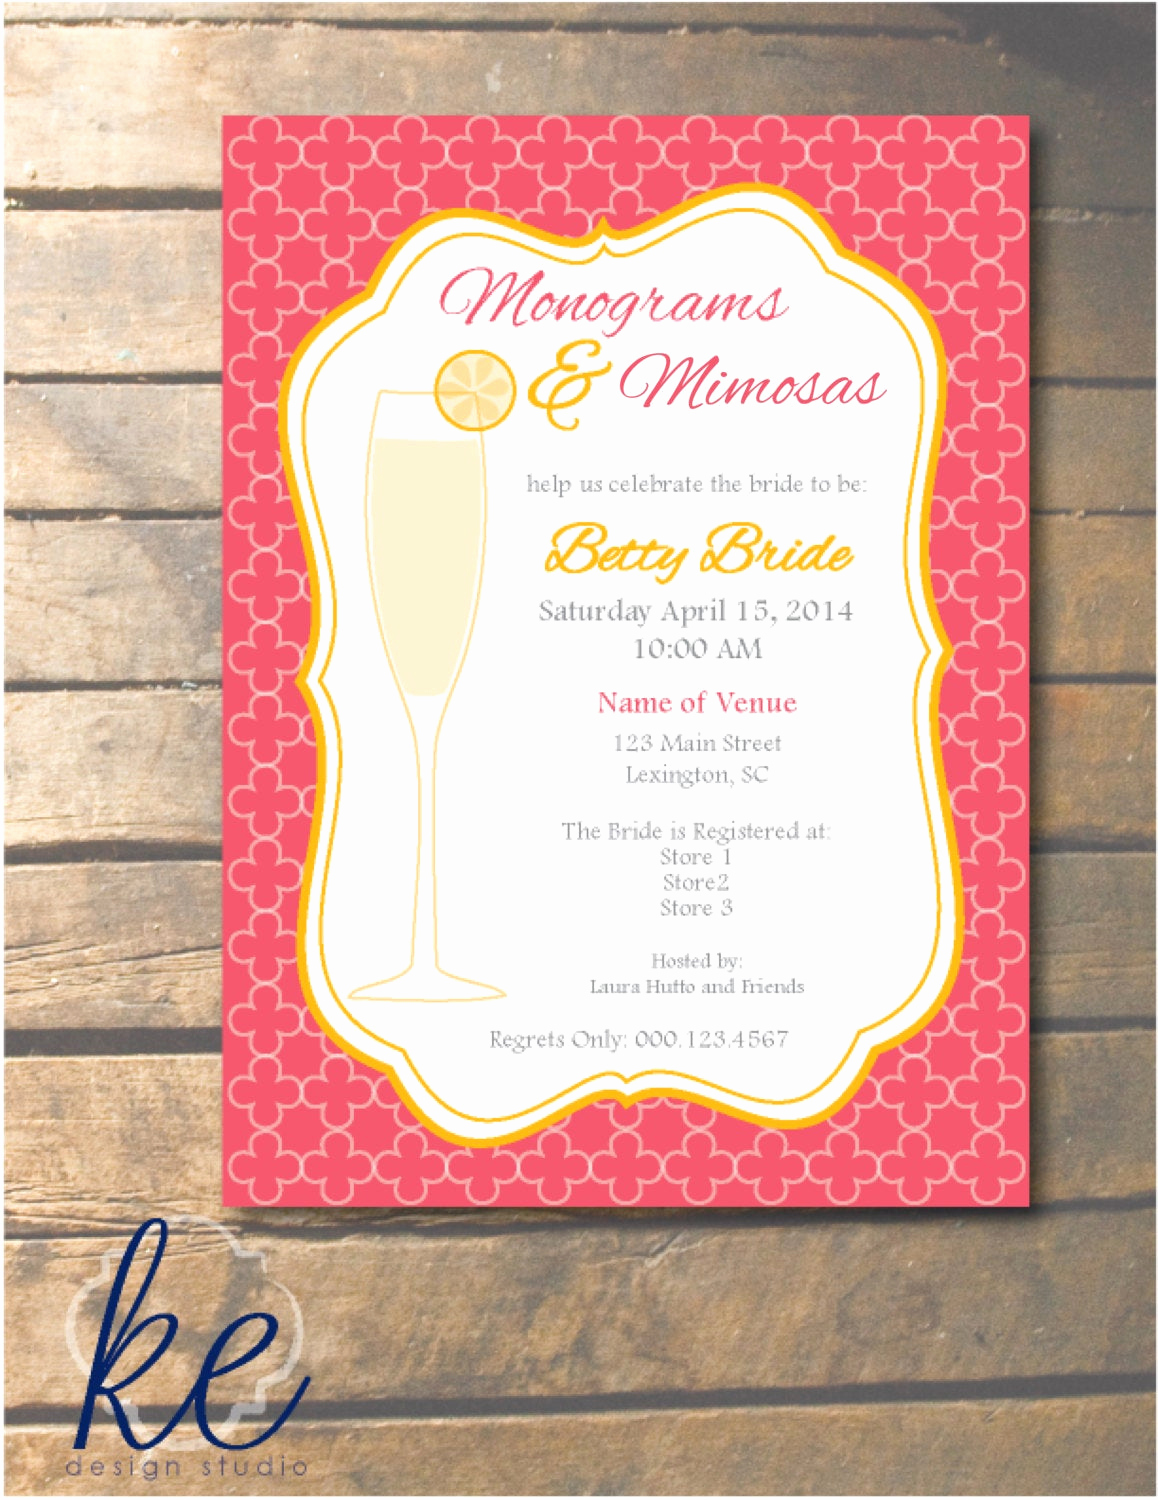 Mimosa Bridal Shower Invitation Elegant Monograms and Mimosas Wedding Shower Invitations by